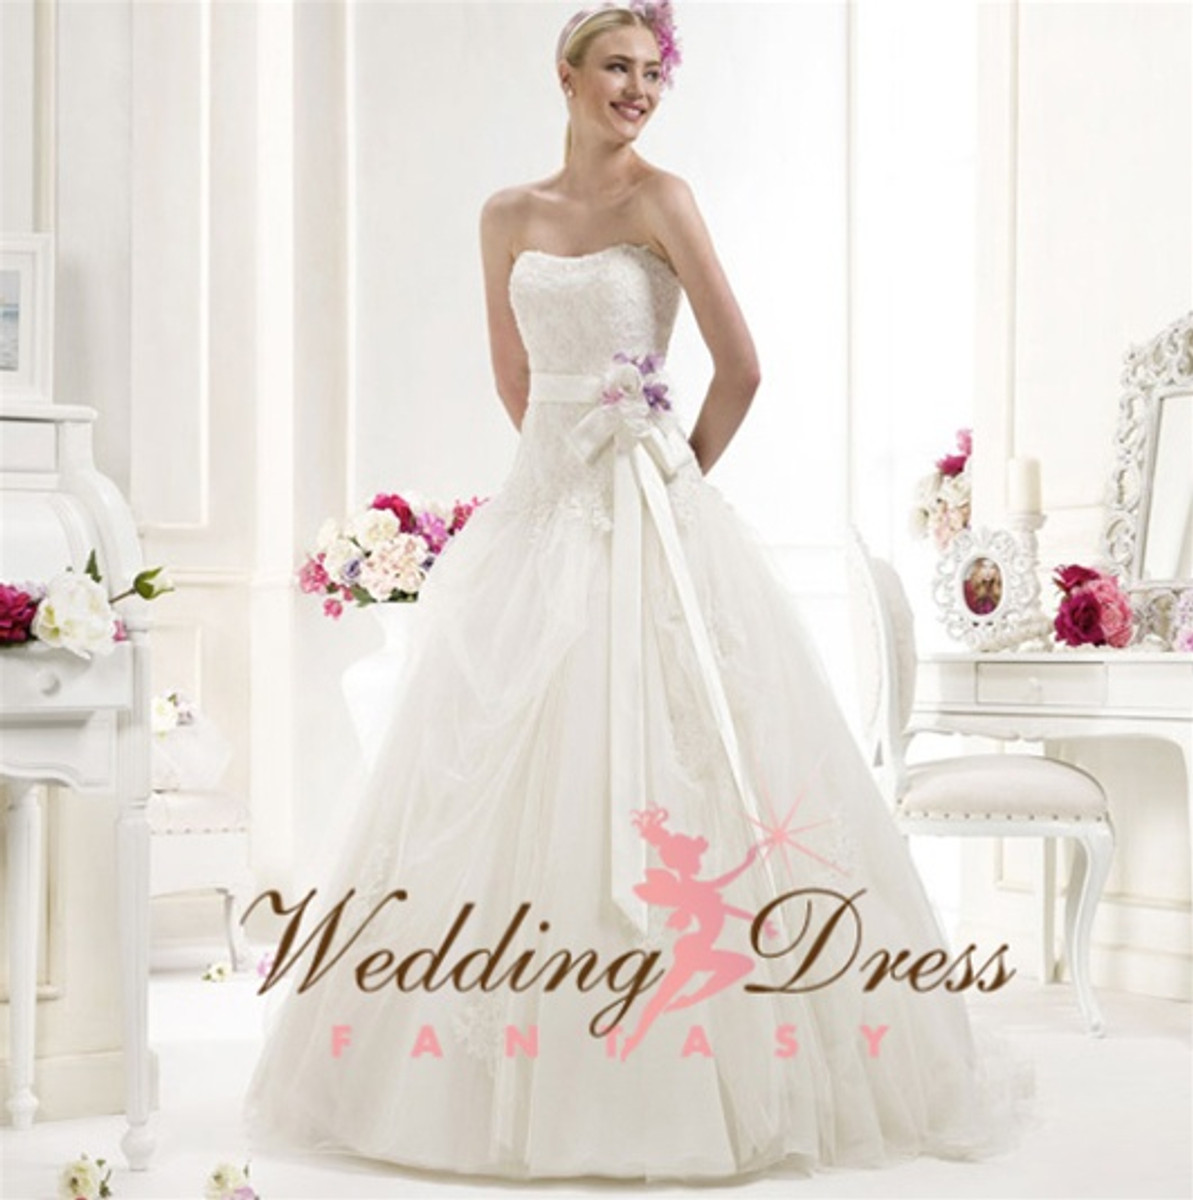 Vintage Inspired Wedding Dress- Available in Every Color 1